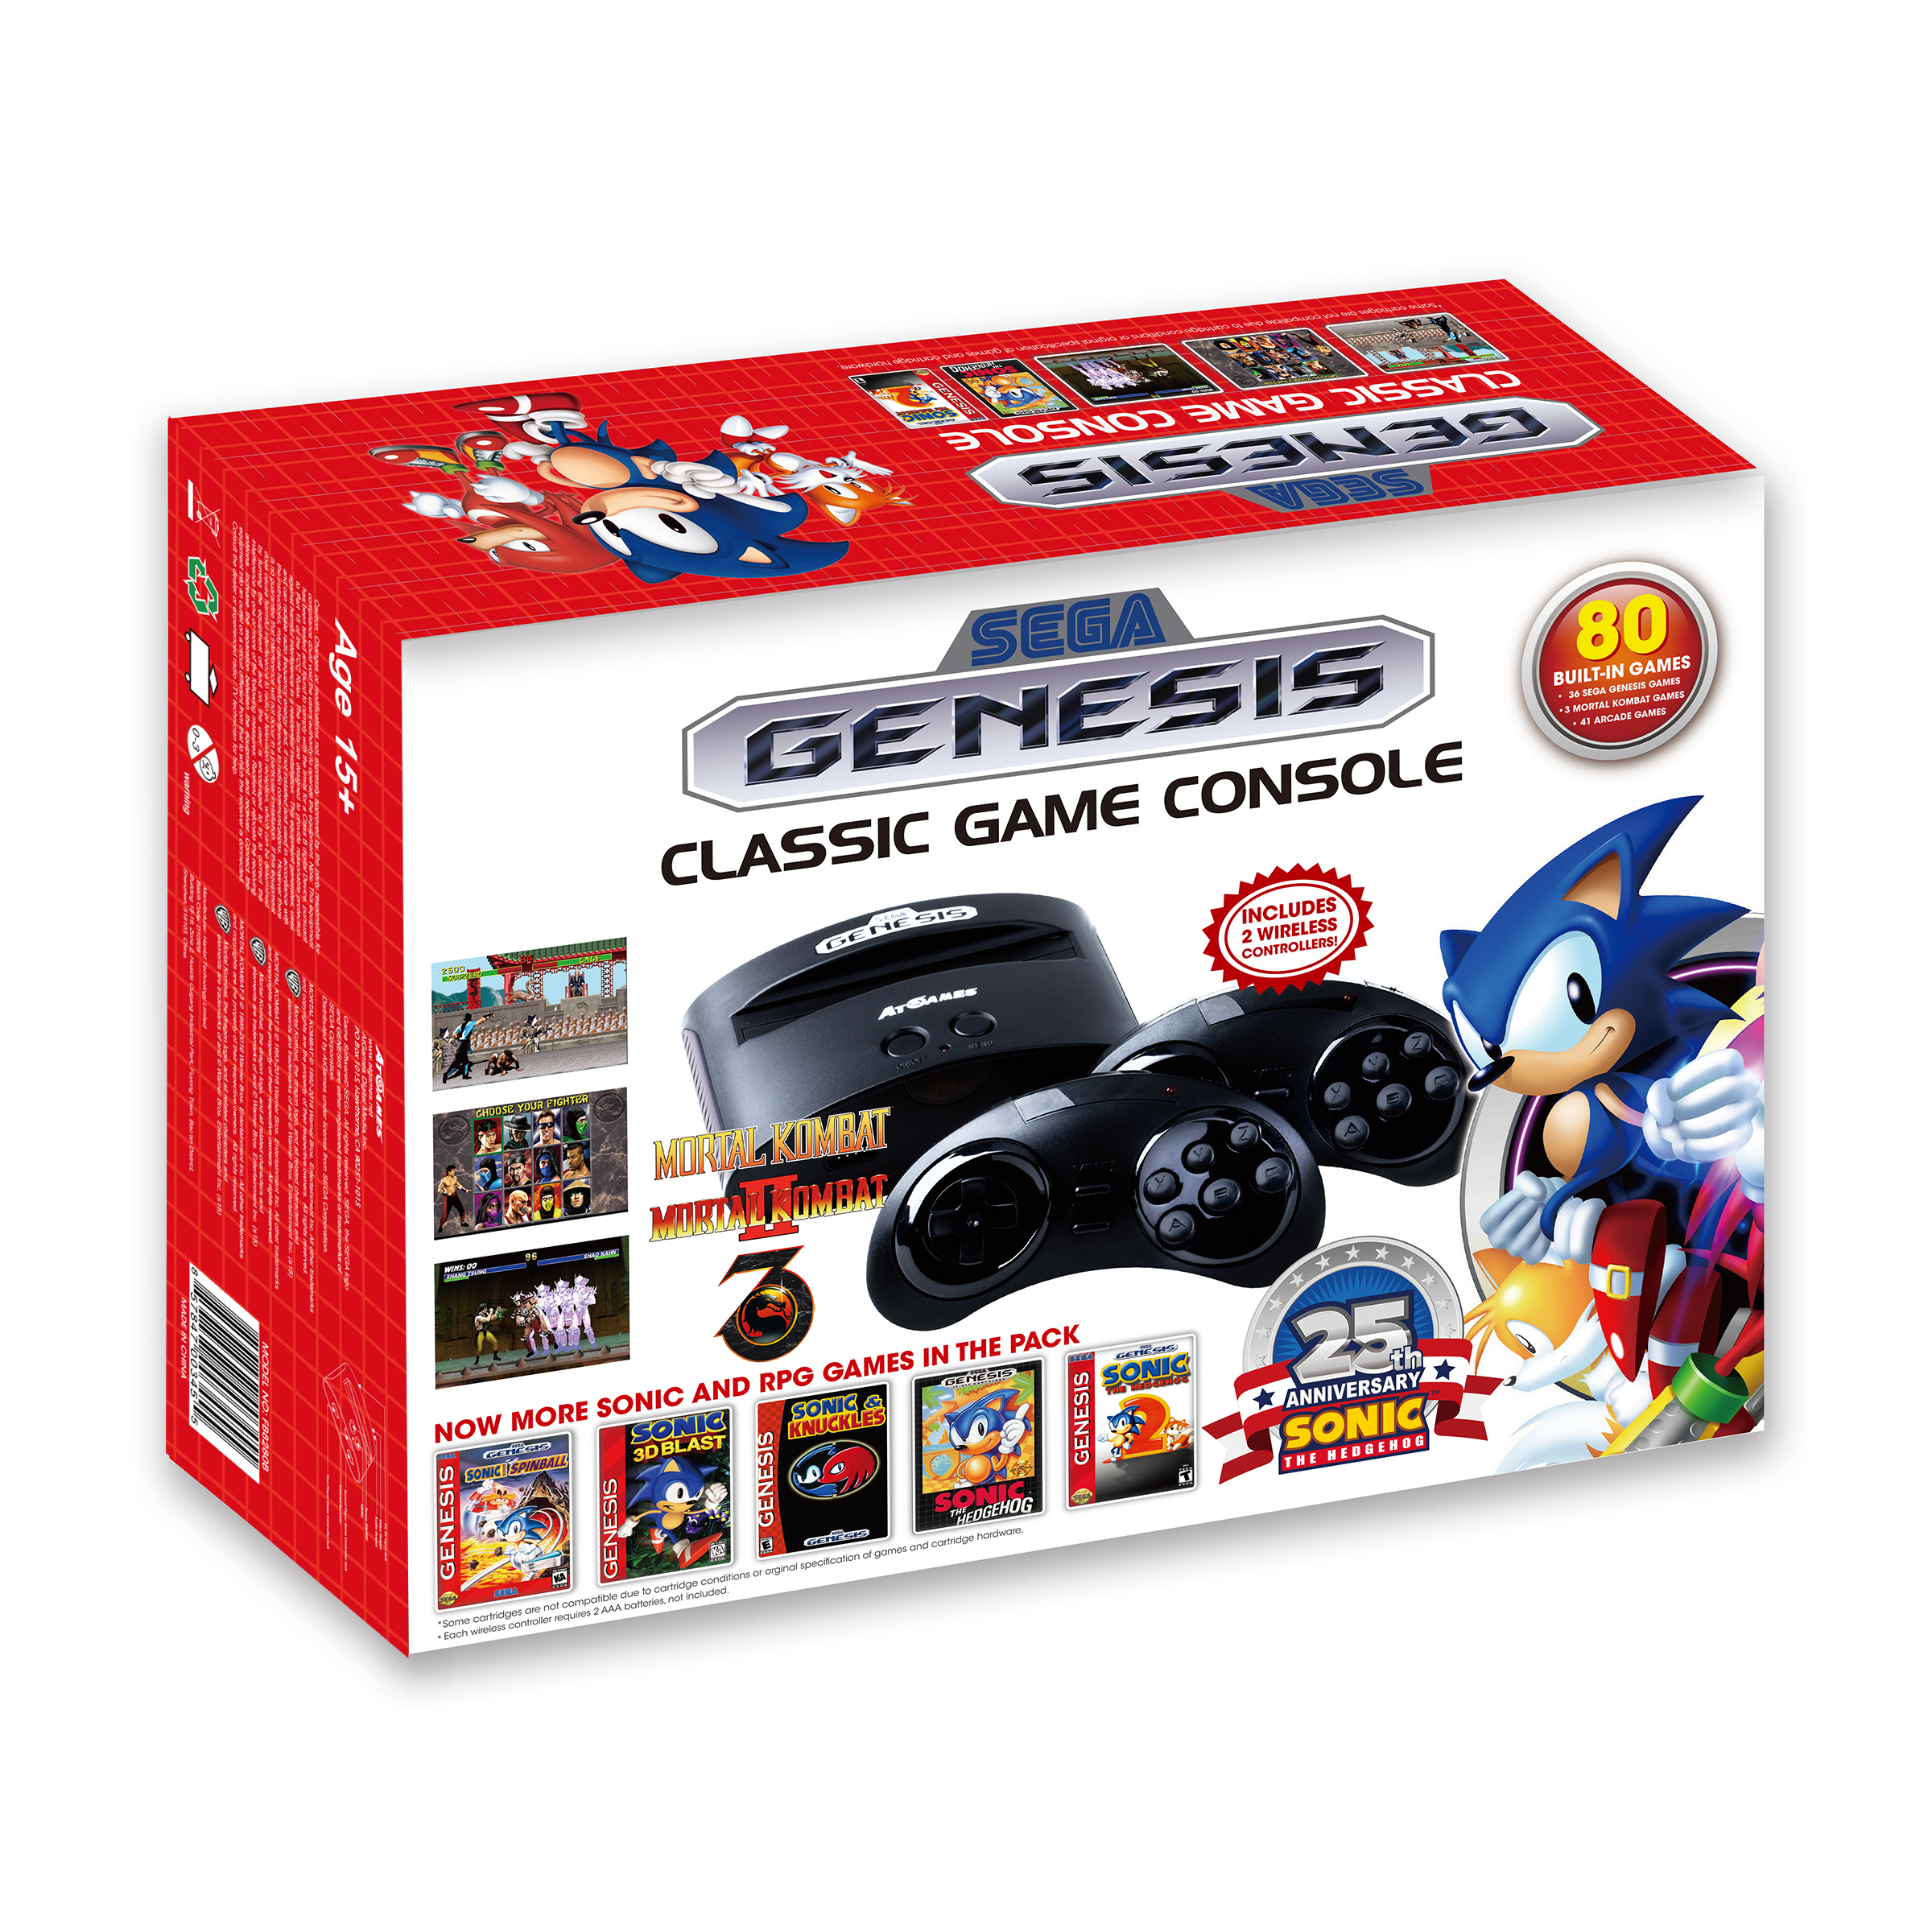 Sega Genesis Classic Game Console 2016 The Official